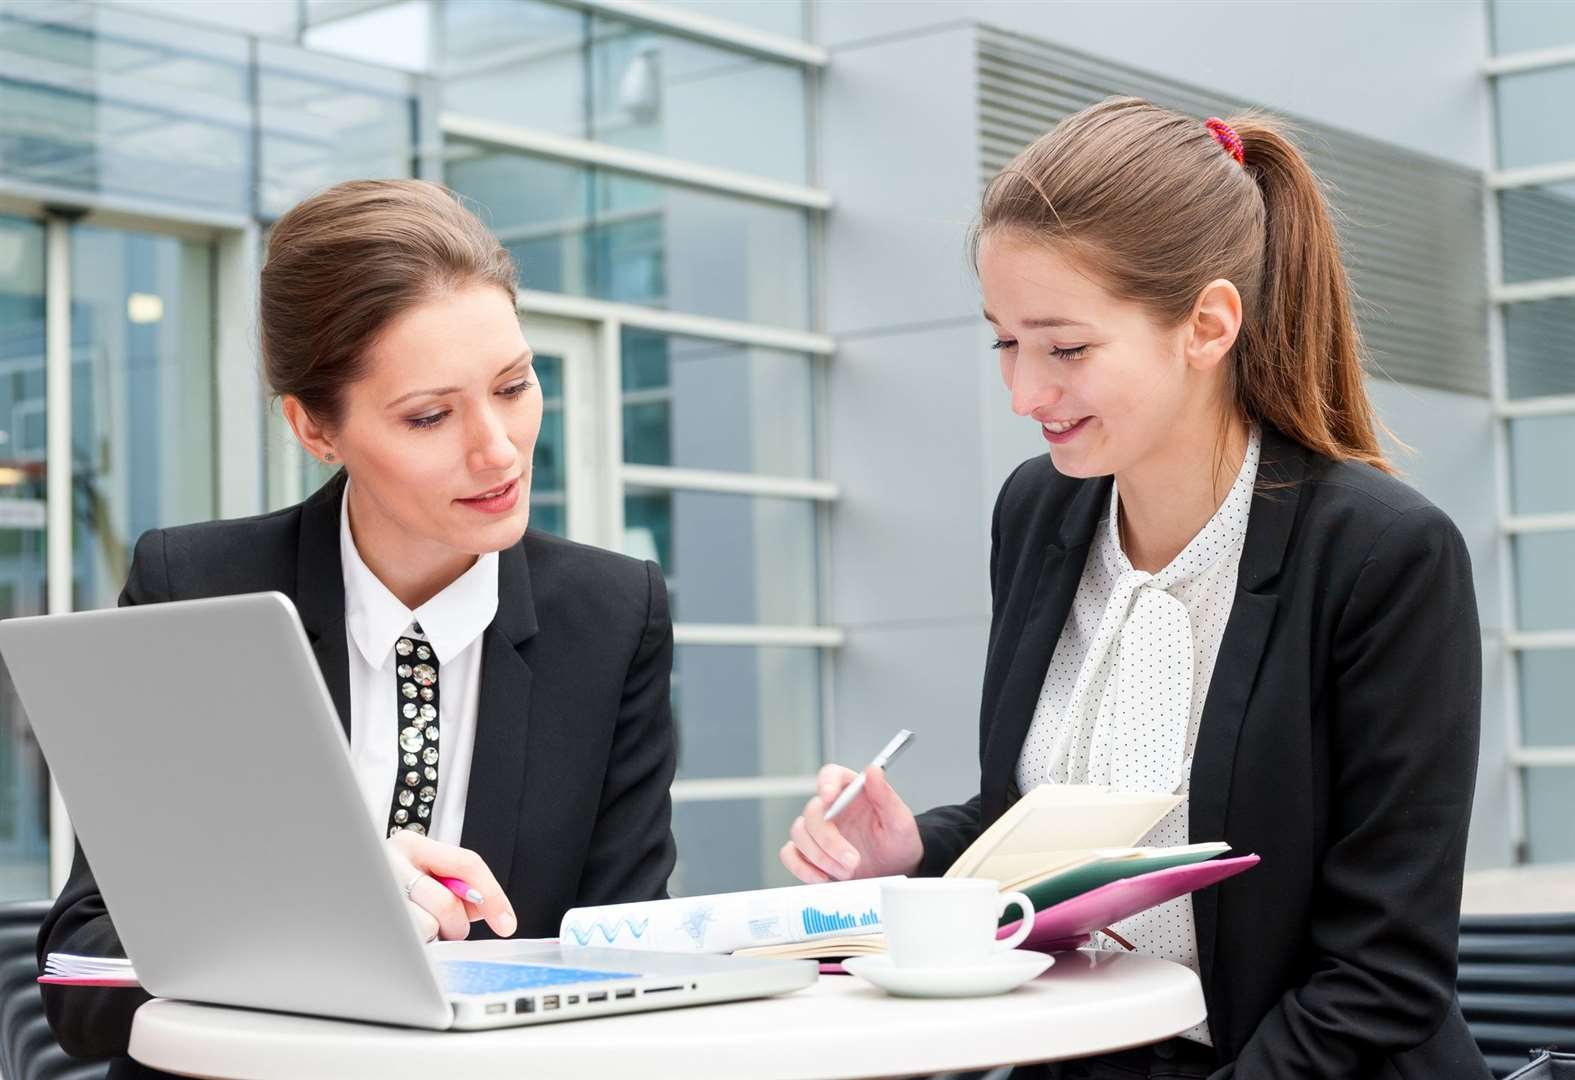 Two young business women works together (7643760)